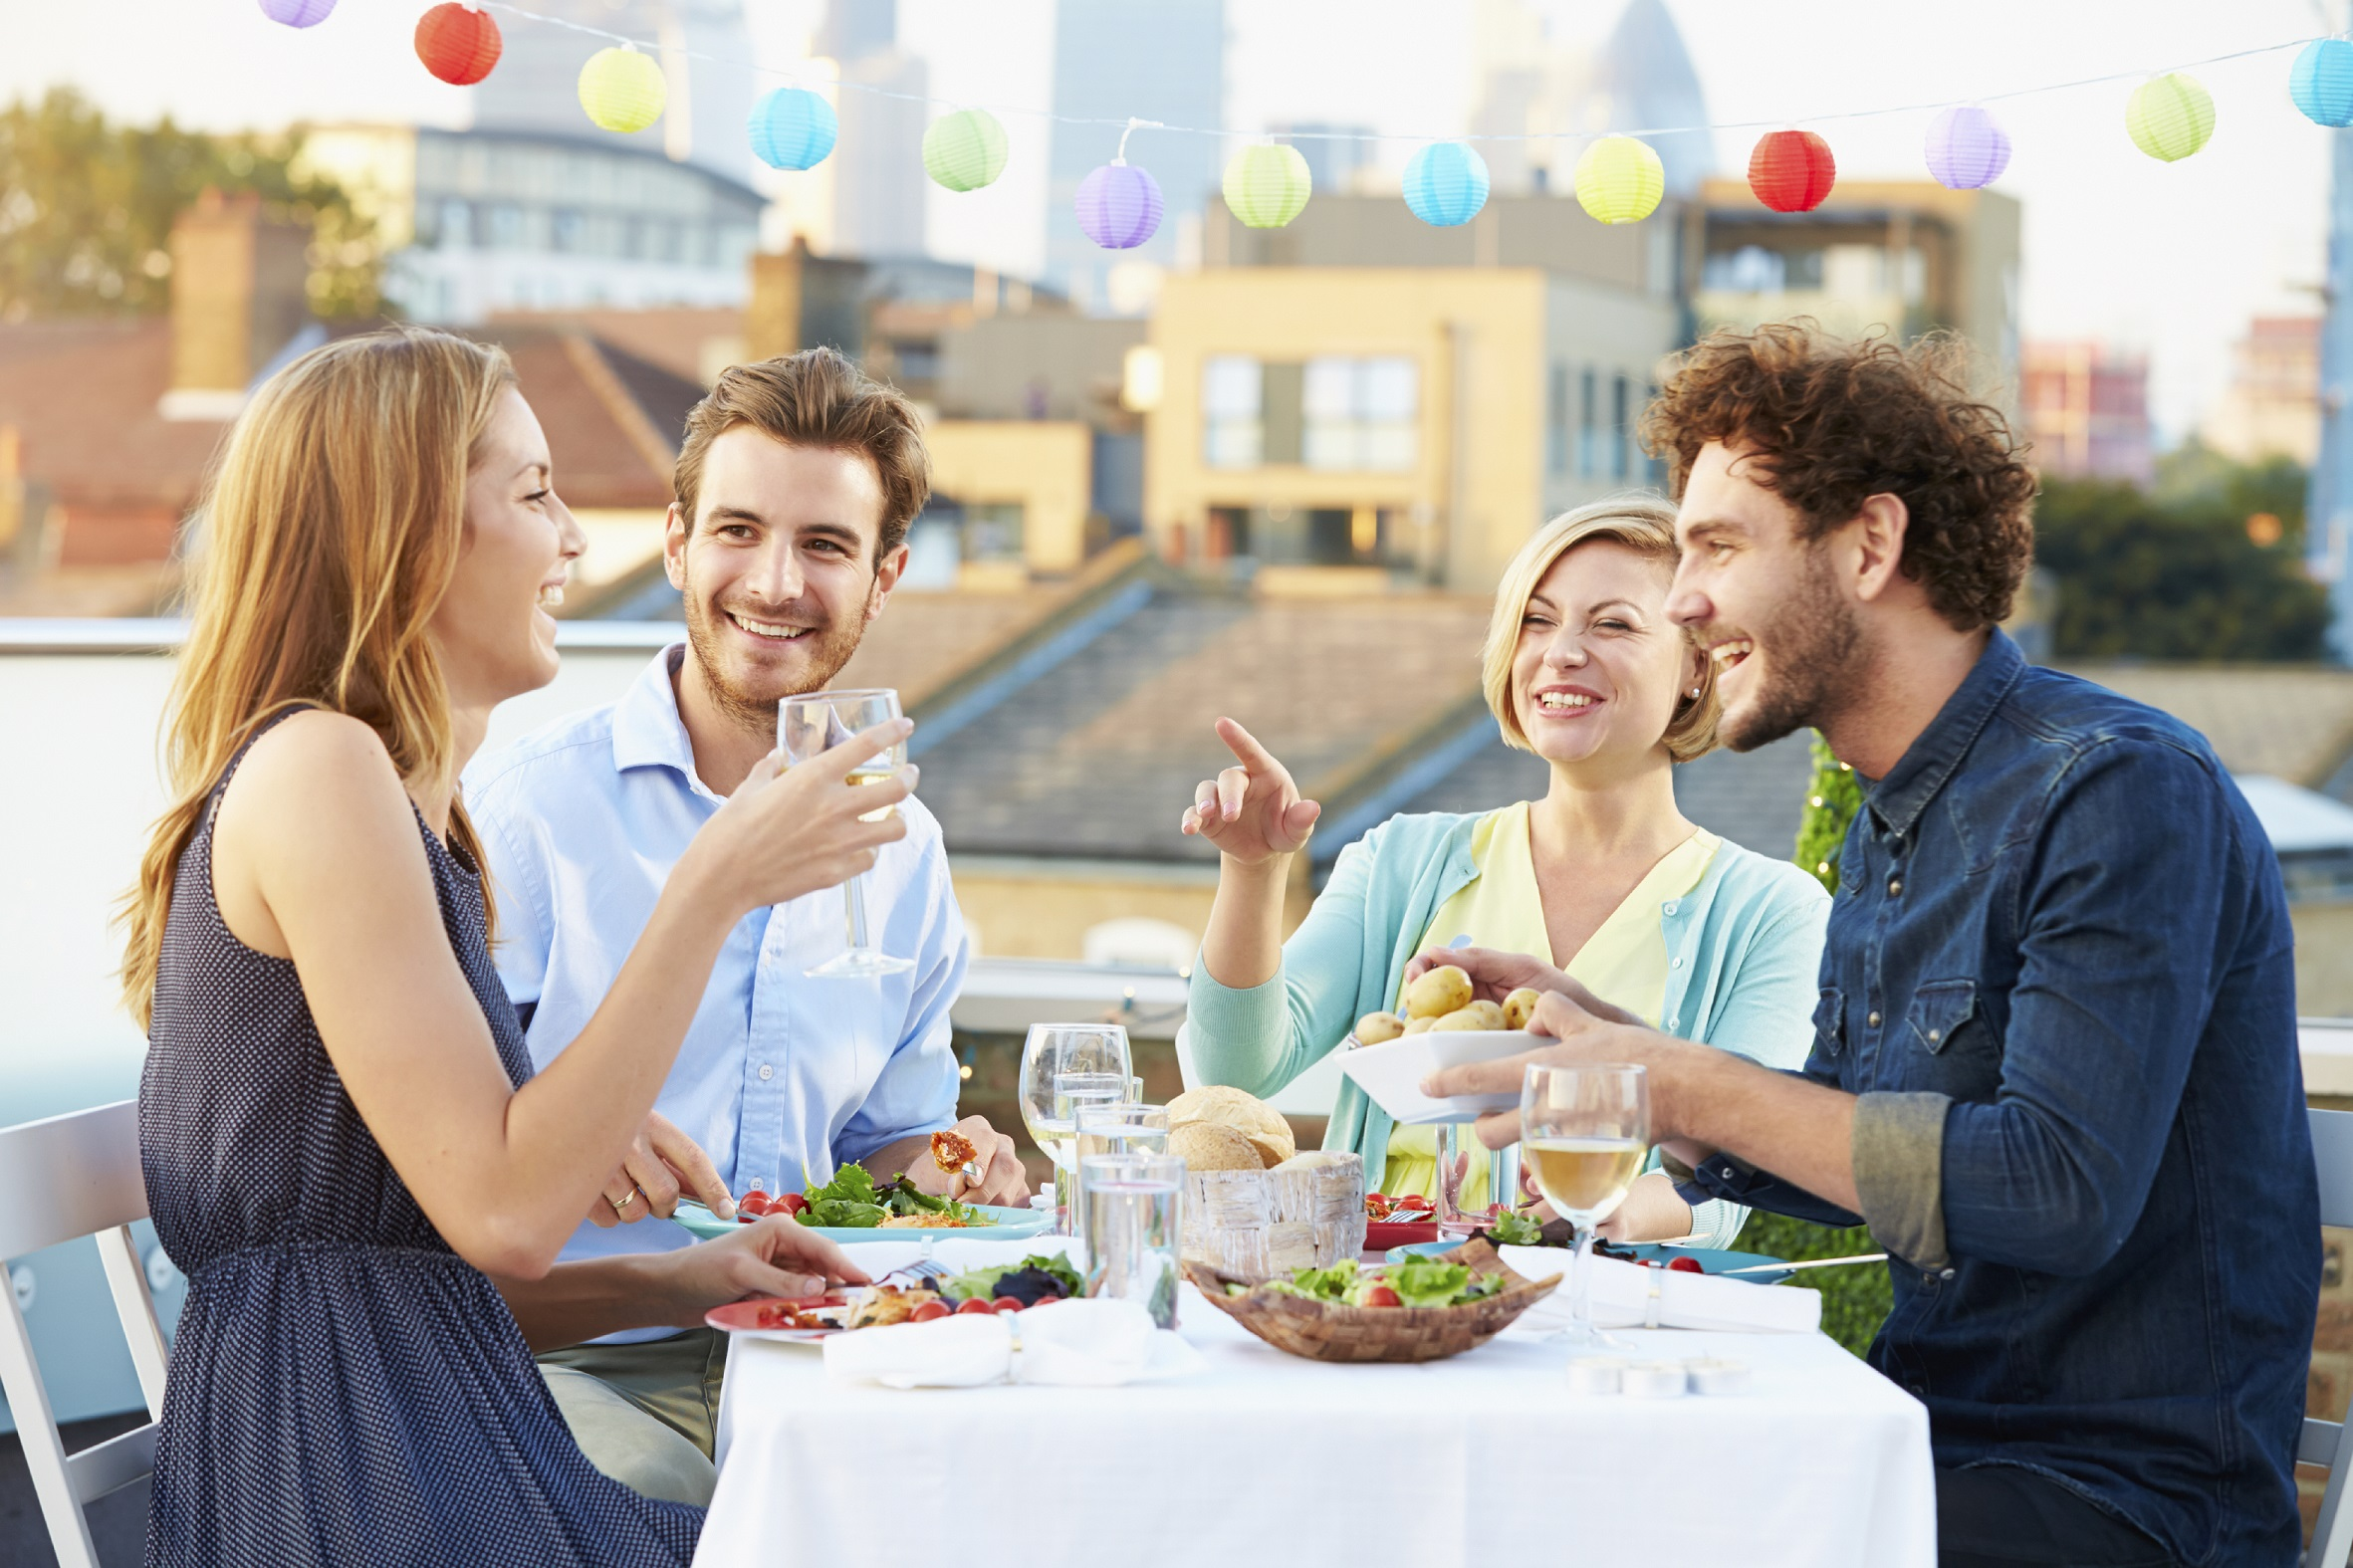 maintaining good habits when eating with friends